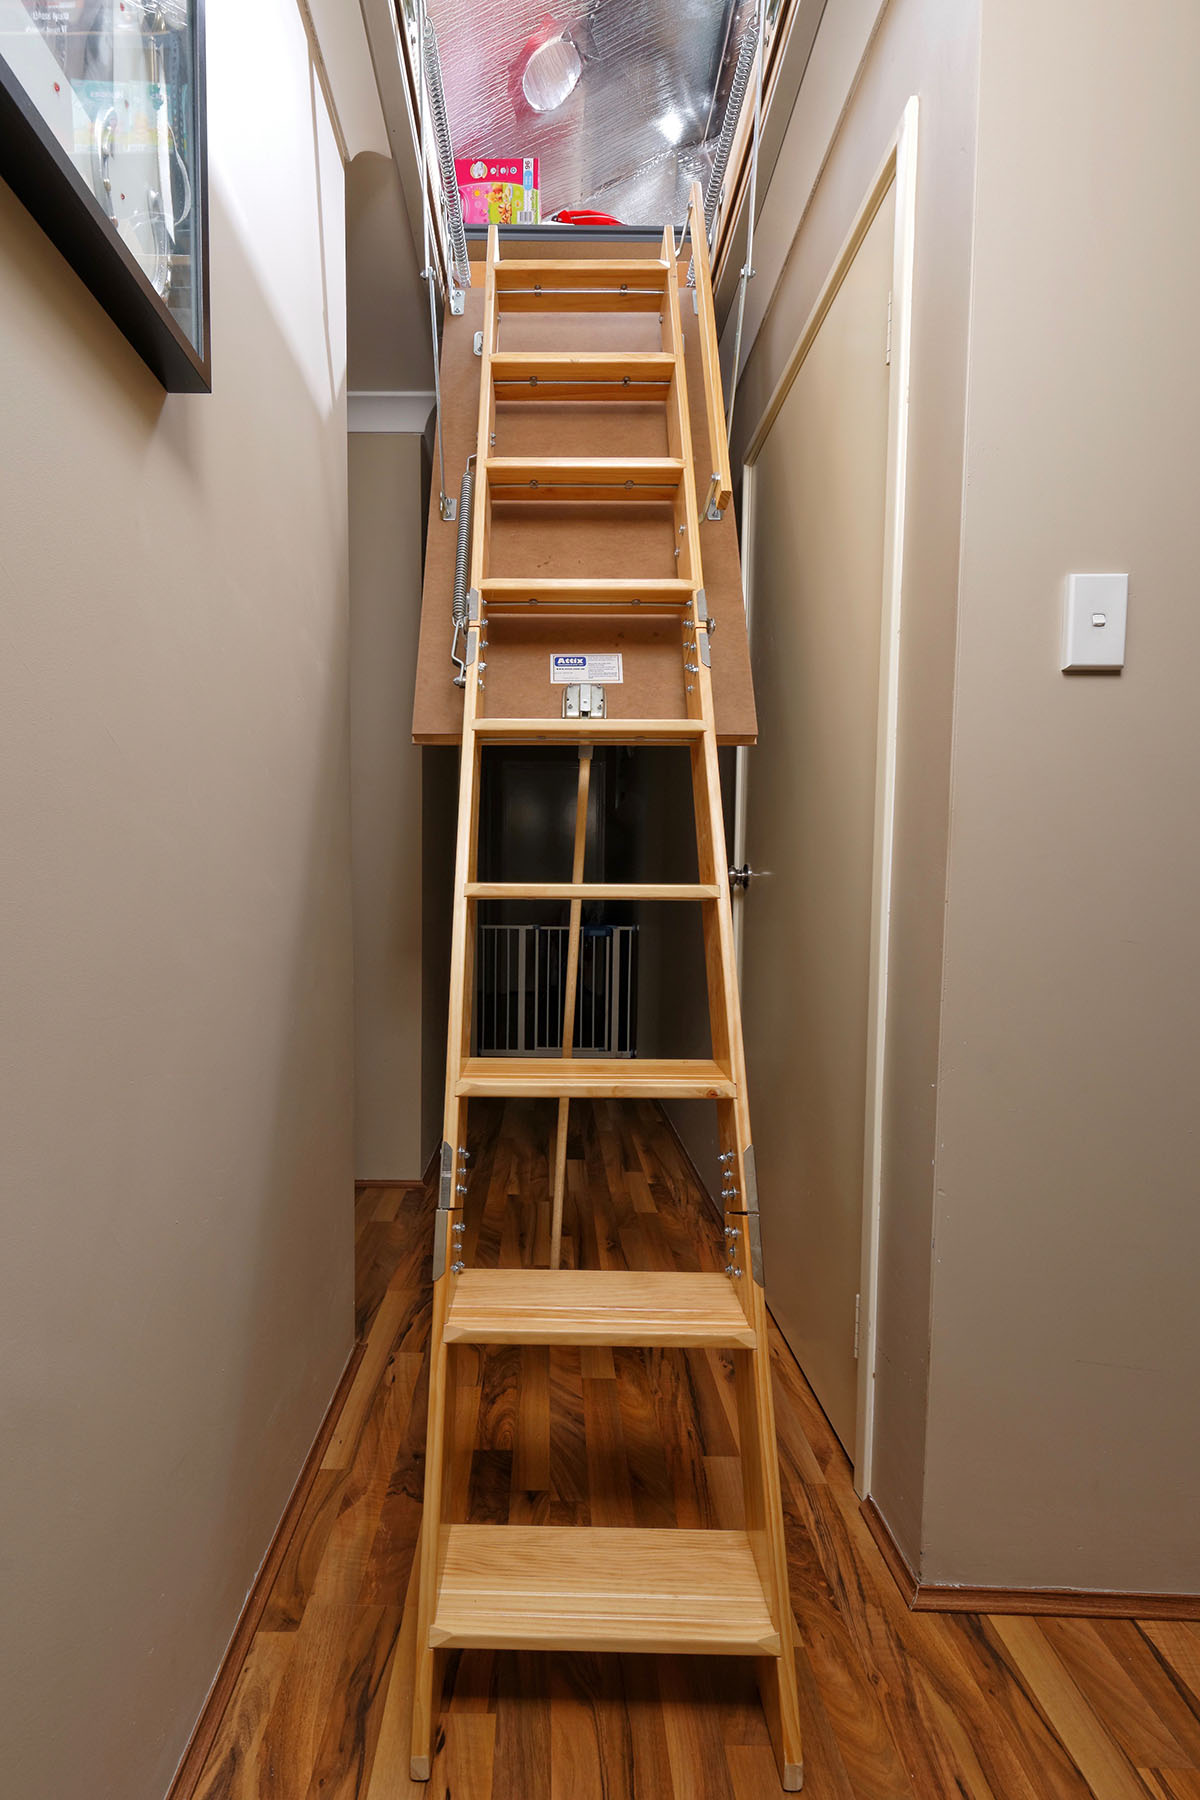 Attic Ladder Utility Model 2